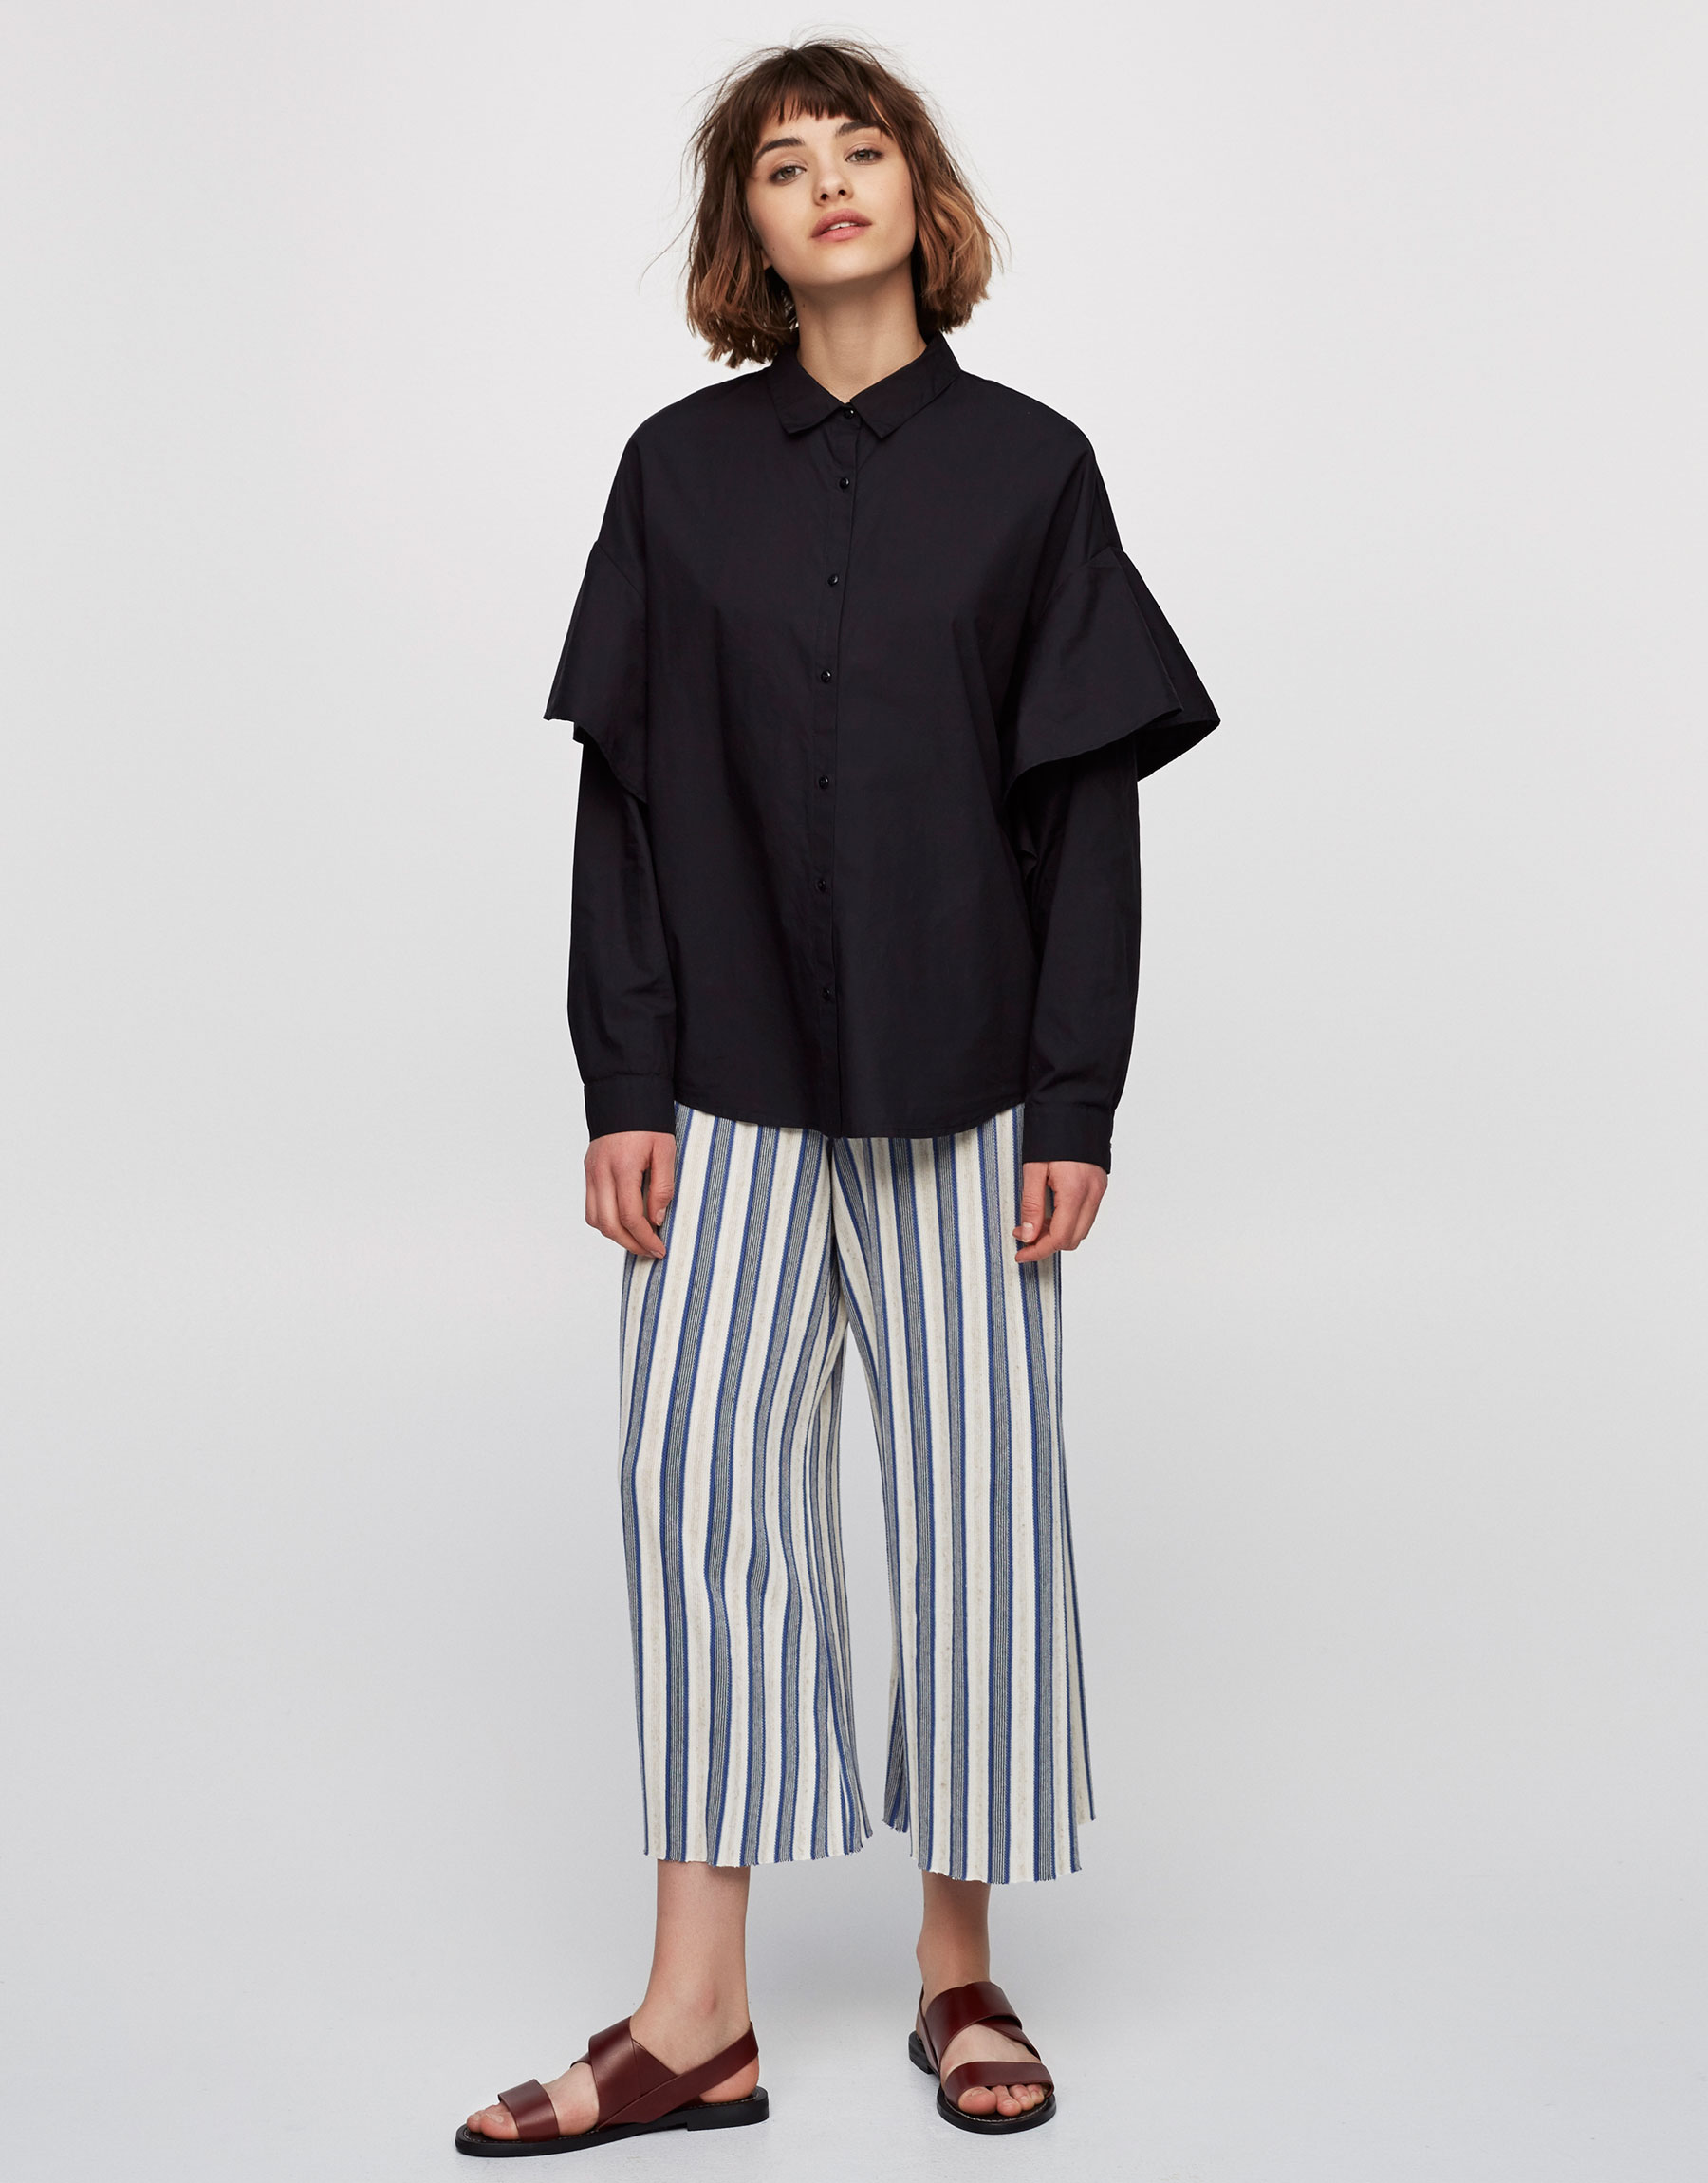 Oversized shirt with ruffled trims on the sleeves